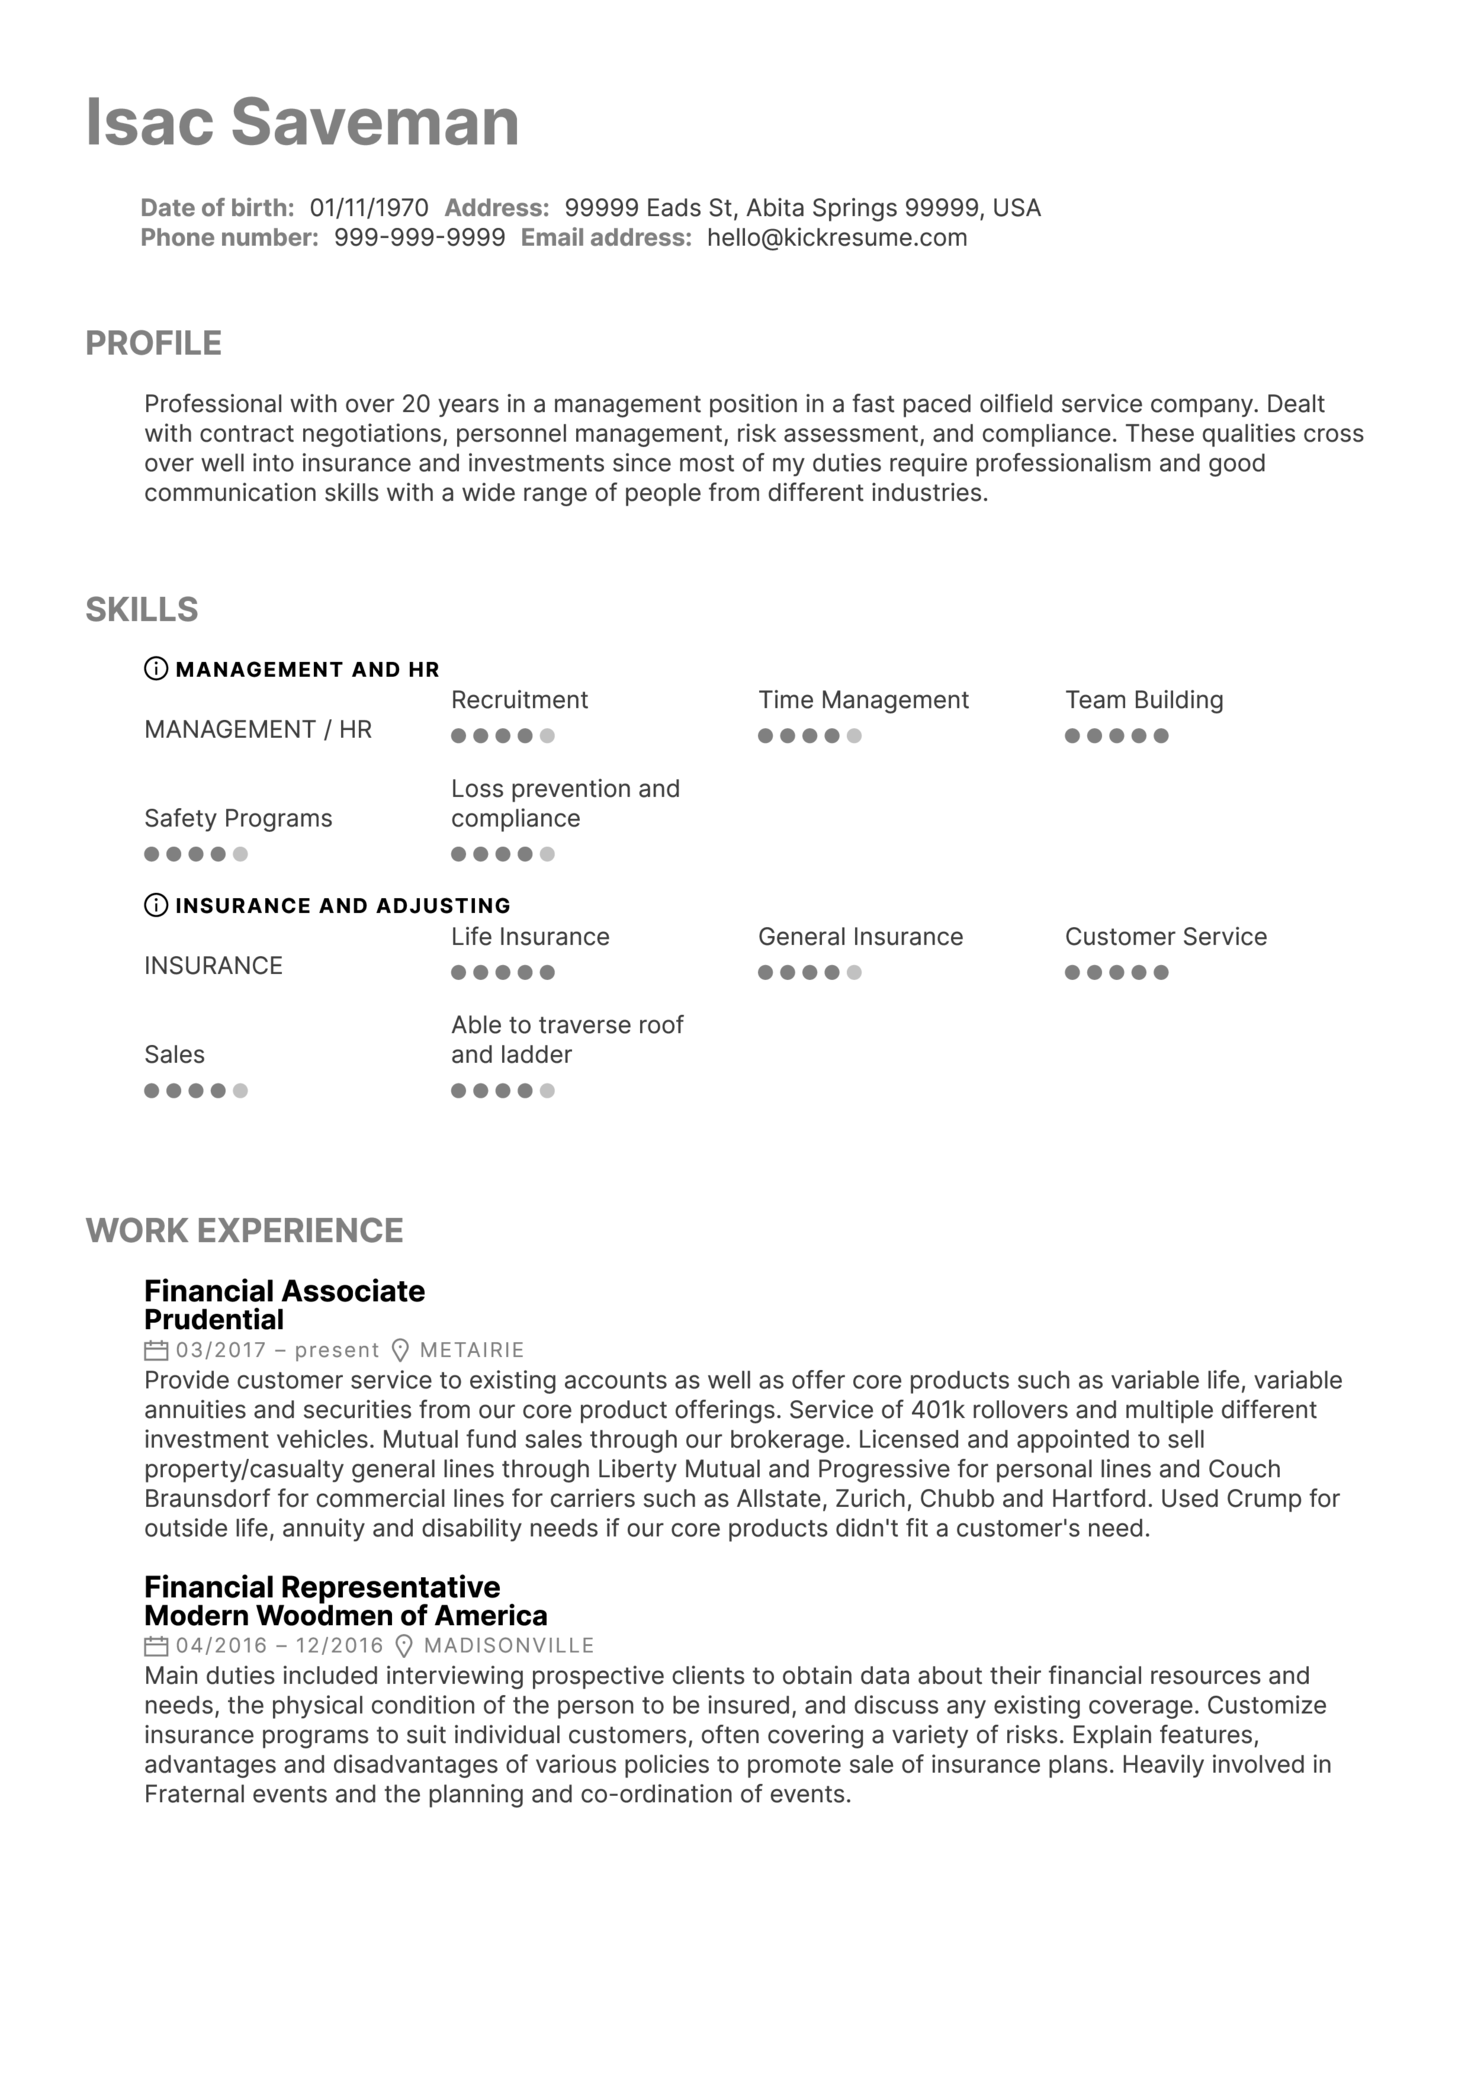 Prudential financial services associate resume example | Resume ...